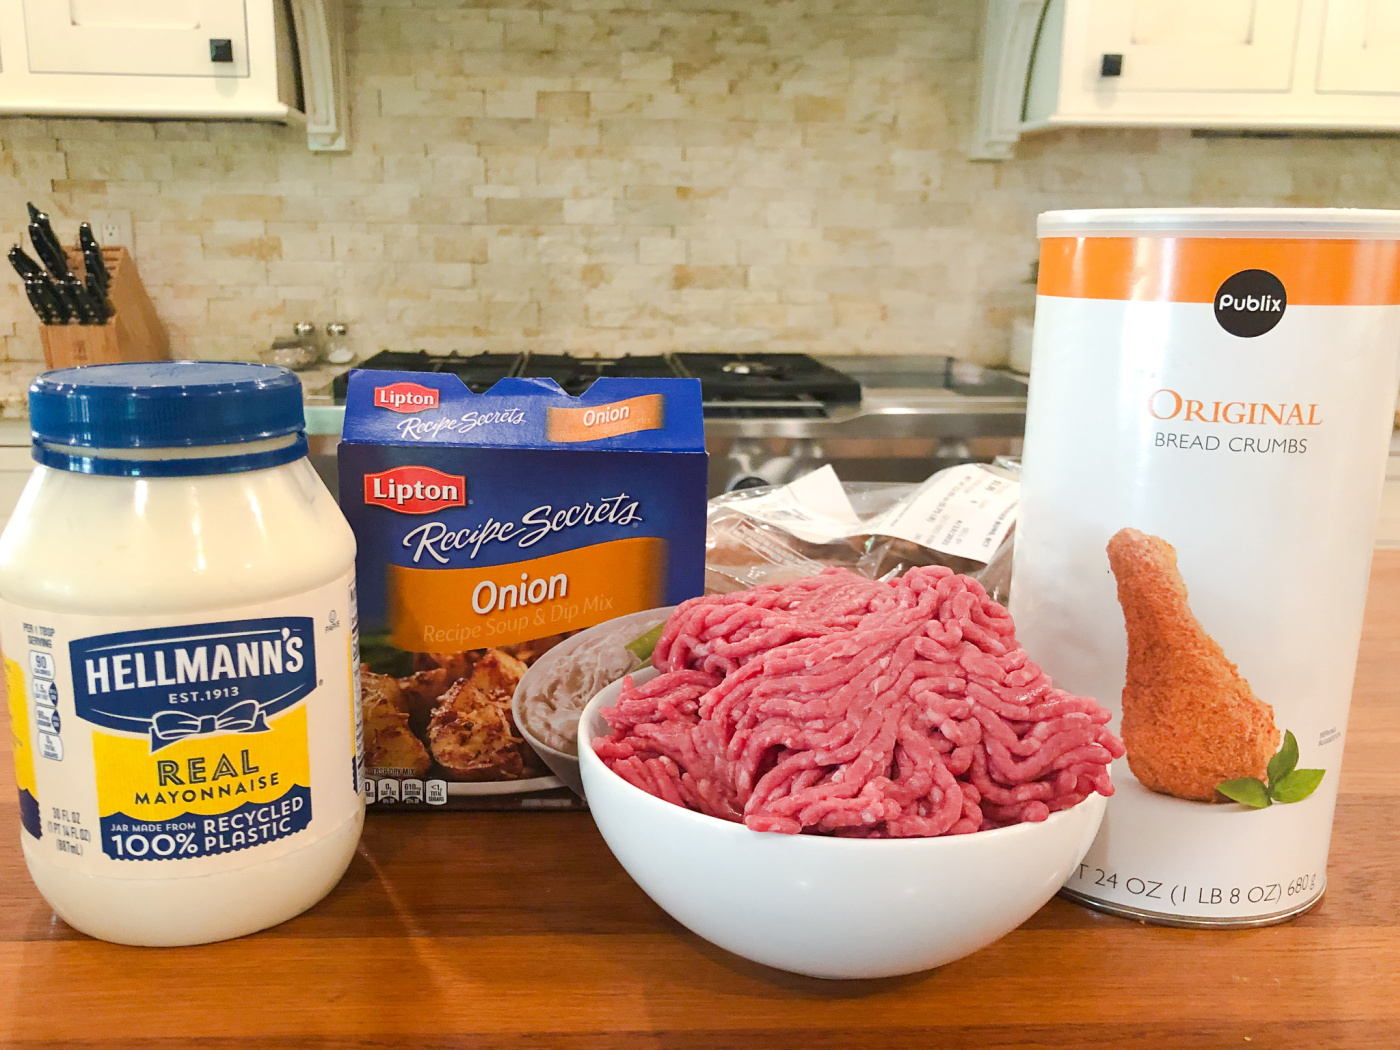 Best Ever Juicy Burgers Recipe Using Hellmann's Mayonnaise - BOGO Sale This Week At Publix! on I Heart Publix